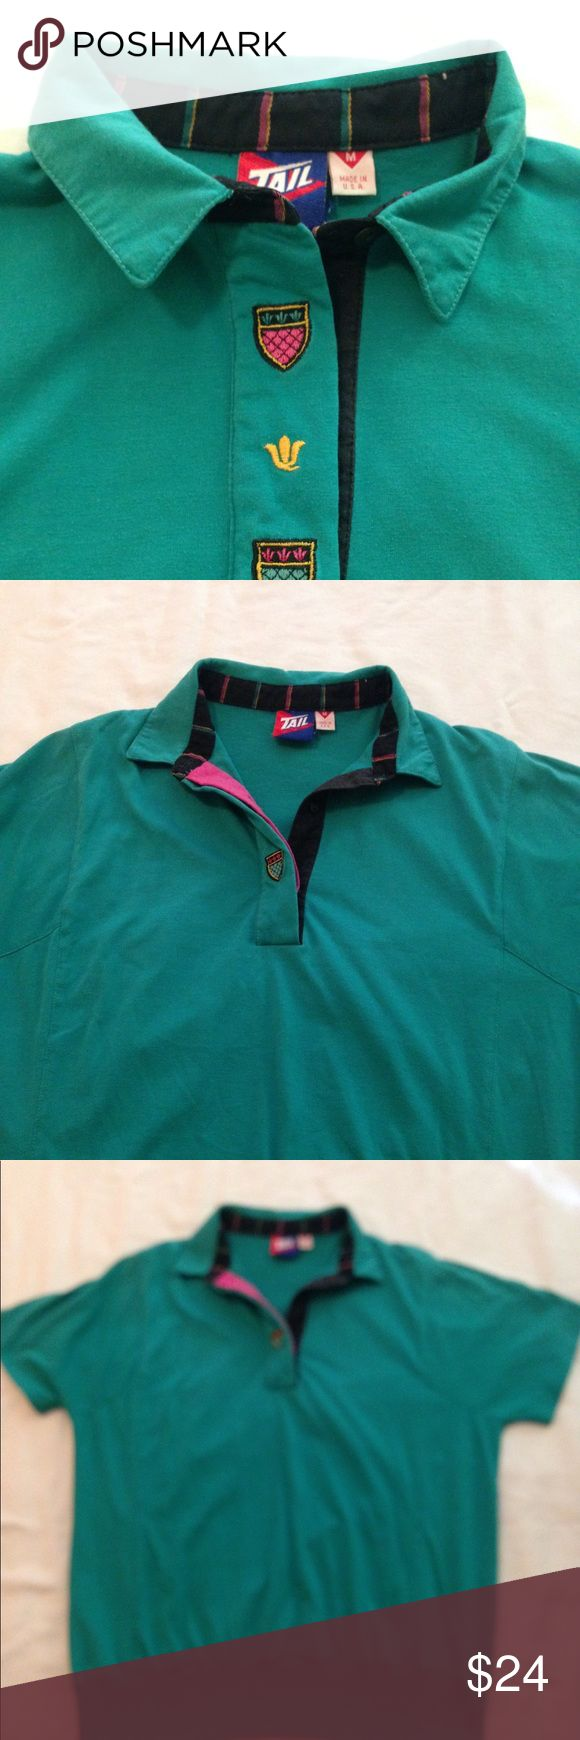 "Vintage Tail Ladies Tennis Golf Shirt Sz M 80's Vintage Tail Ladies Tennis Golf Shirt Sz M 80's in good preowned condition. Armpit to armpit 19"", Made in USA. Great retro shirt! Tail Tops"